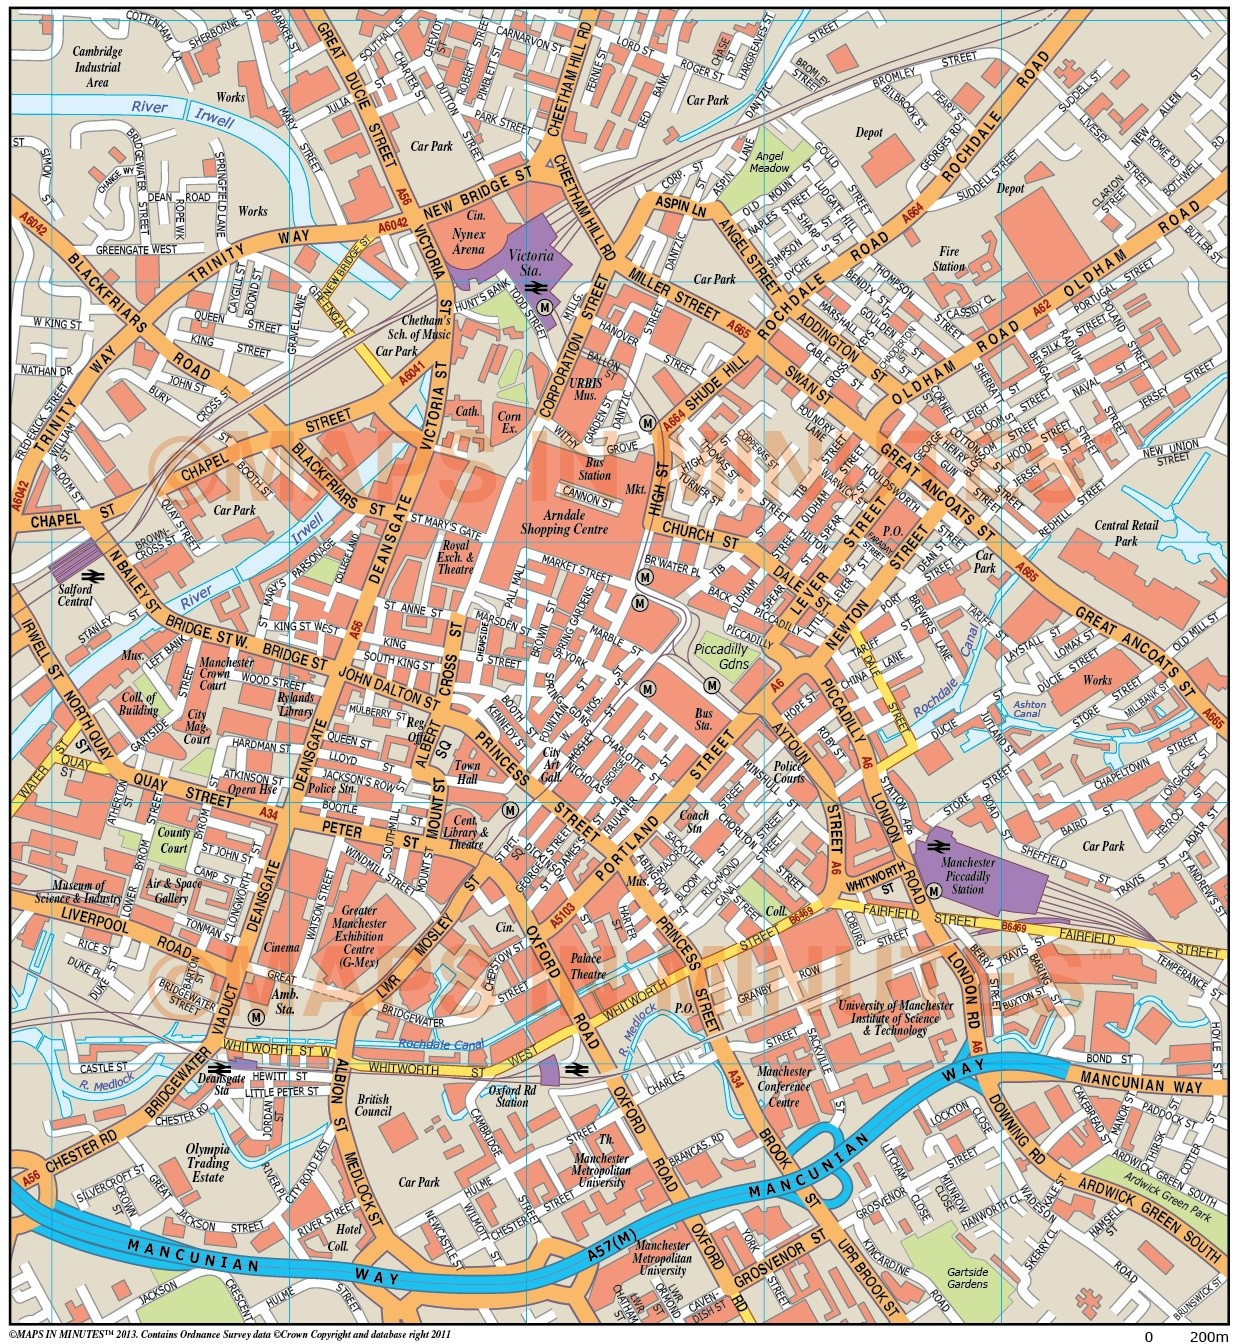 manchester uk city map in illustrator cs or pdf format